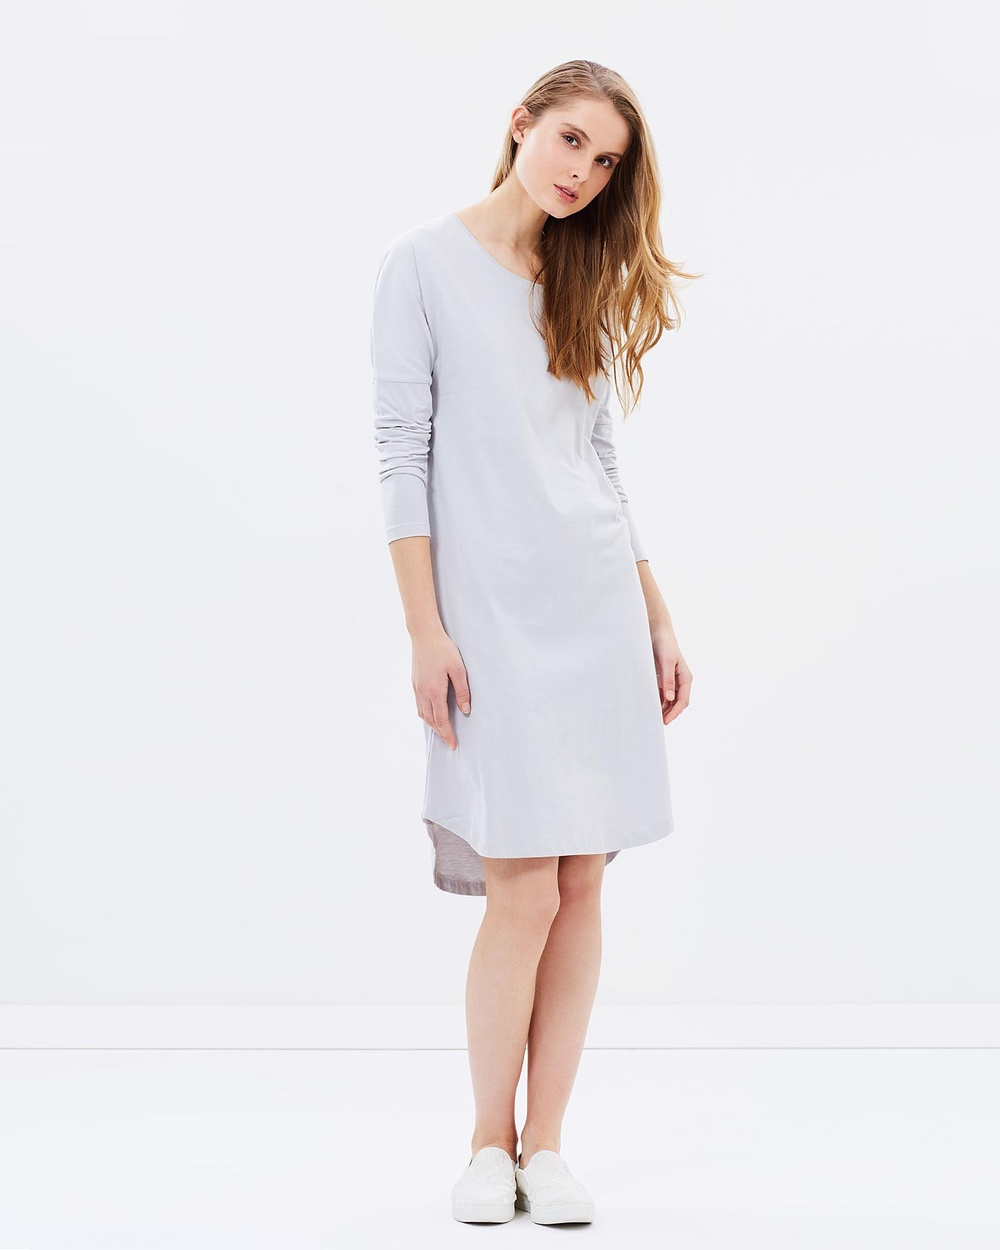 Photo of Cloth & Co. Dove Grey Organic Cotton Long Sleeve Dress - buy Cloth & Co. dresses on sale online